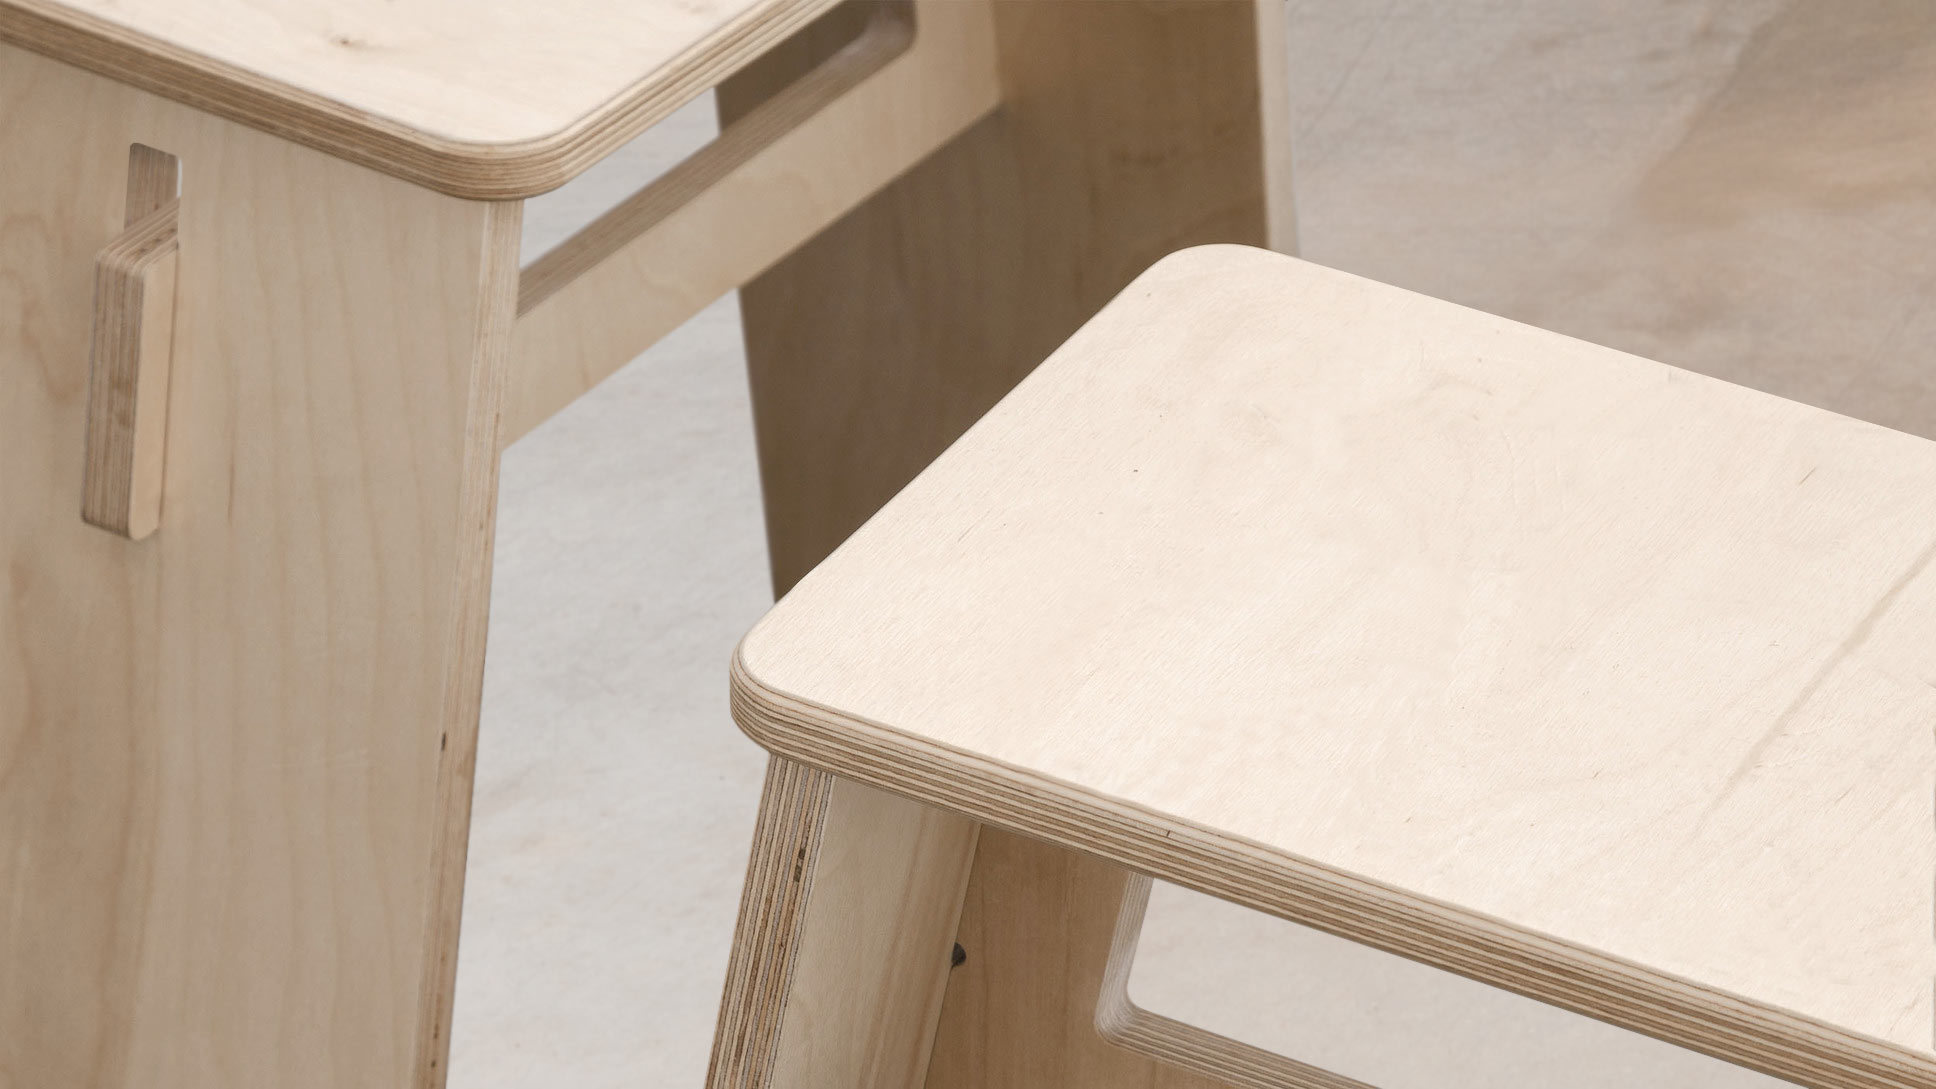 opendesk_furniture_johann-stool_product-page_gallery-image-01.default